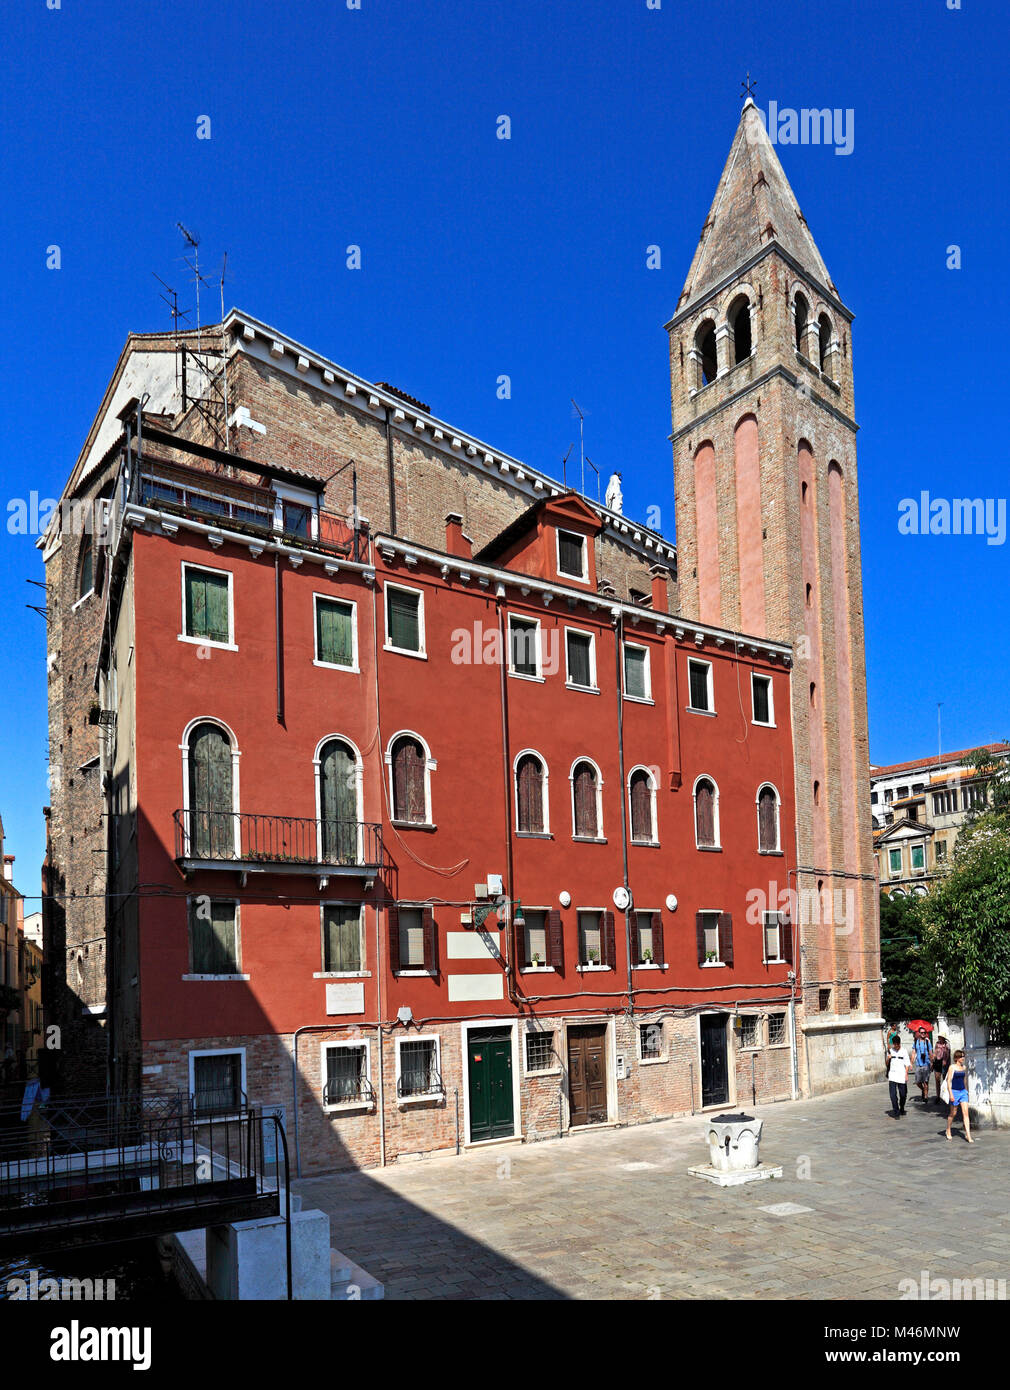 Venice, Veneto / Italy - 2012/07/05: Venice city center - streets and medieval buildings of the San Marco district - Stock Image